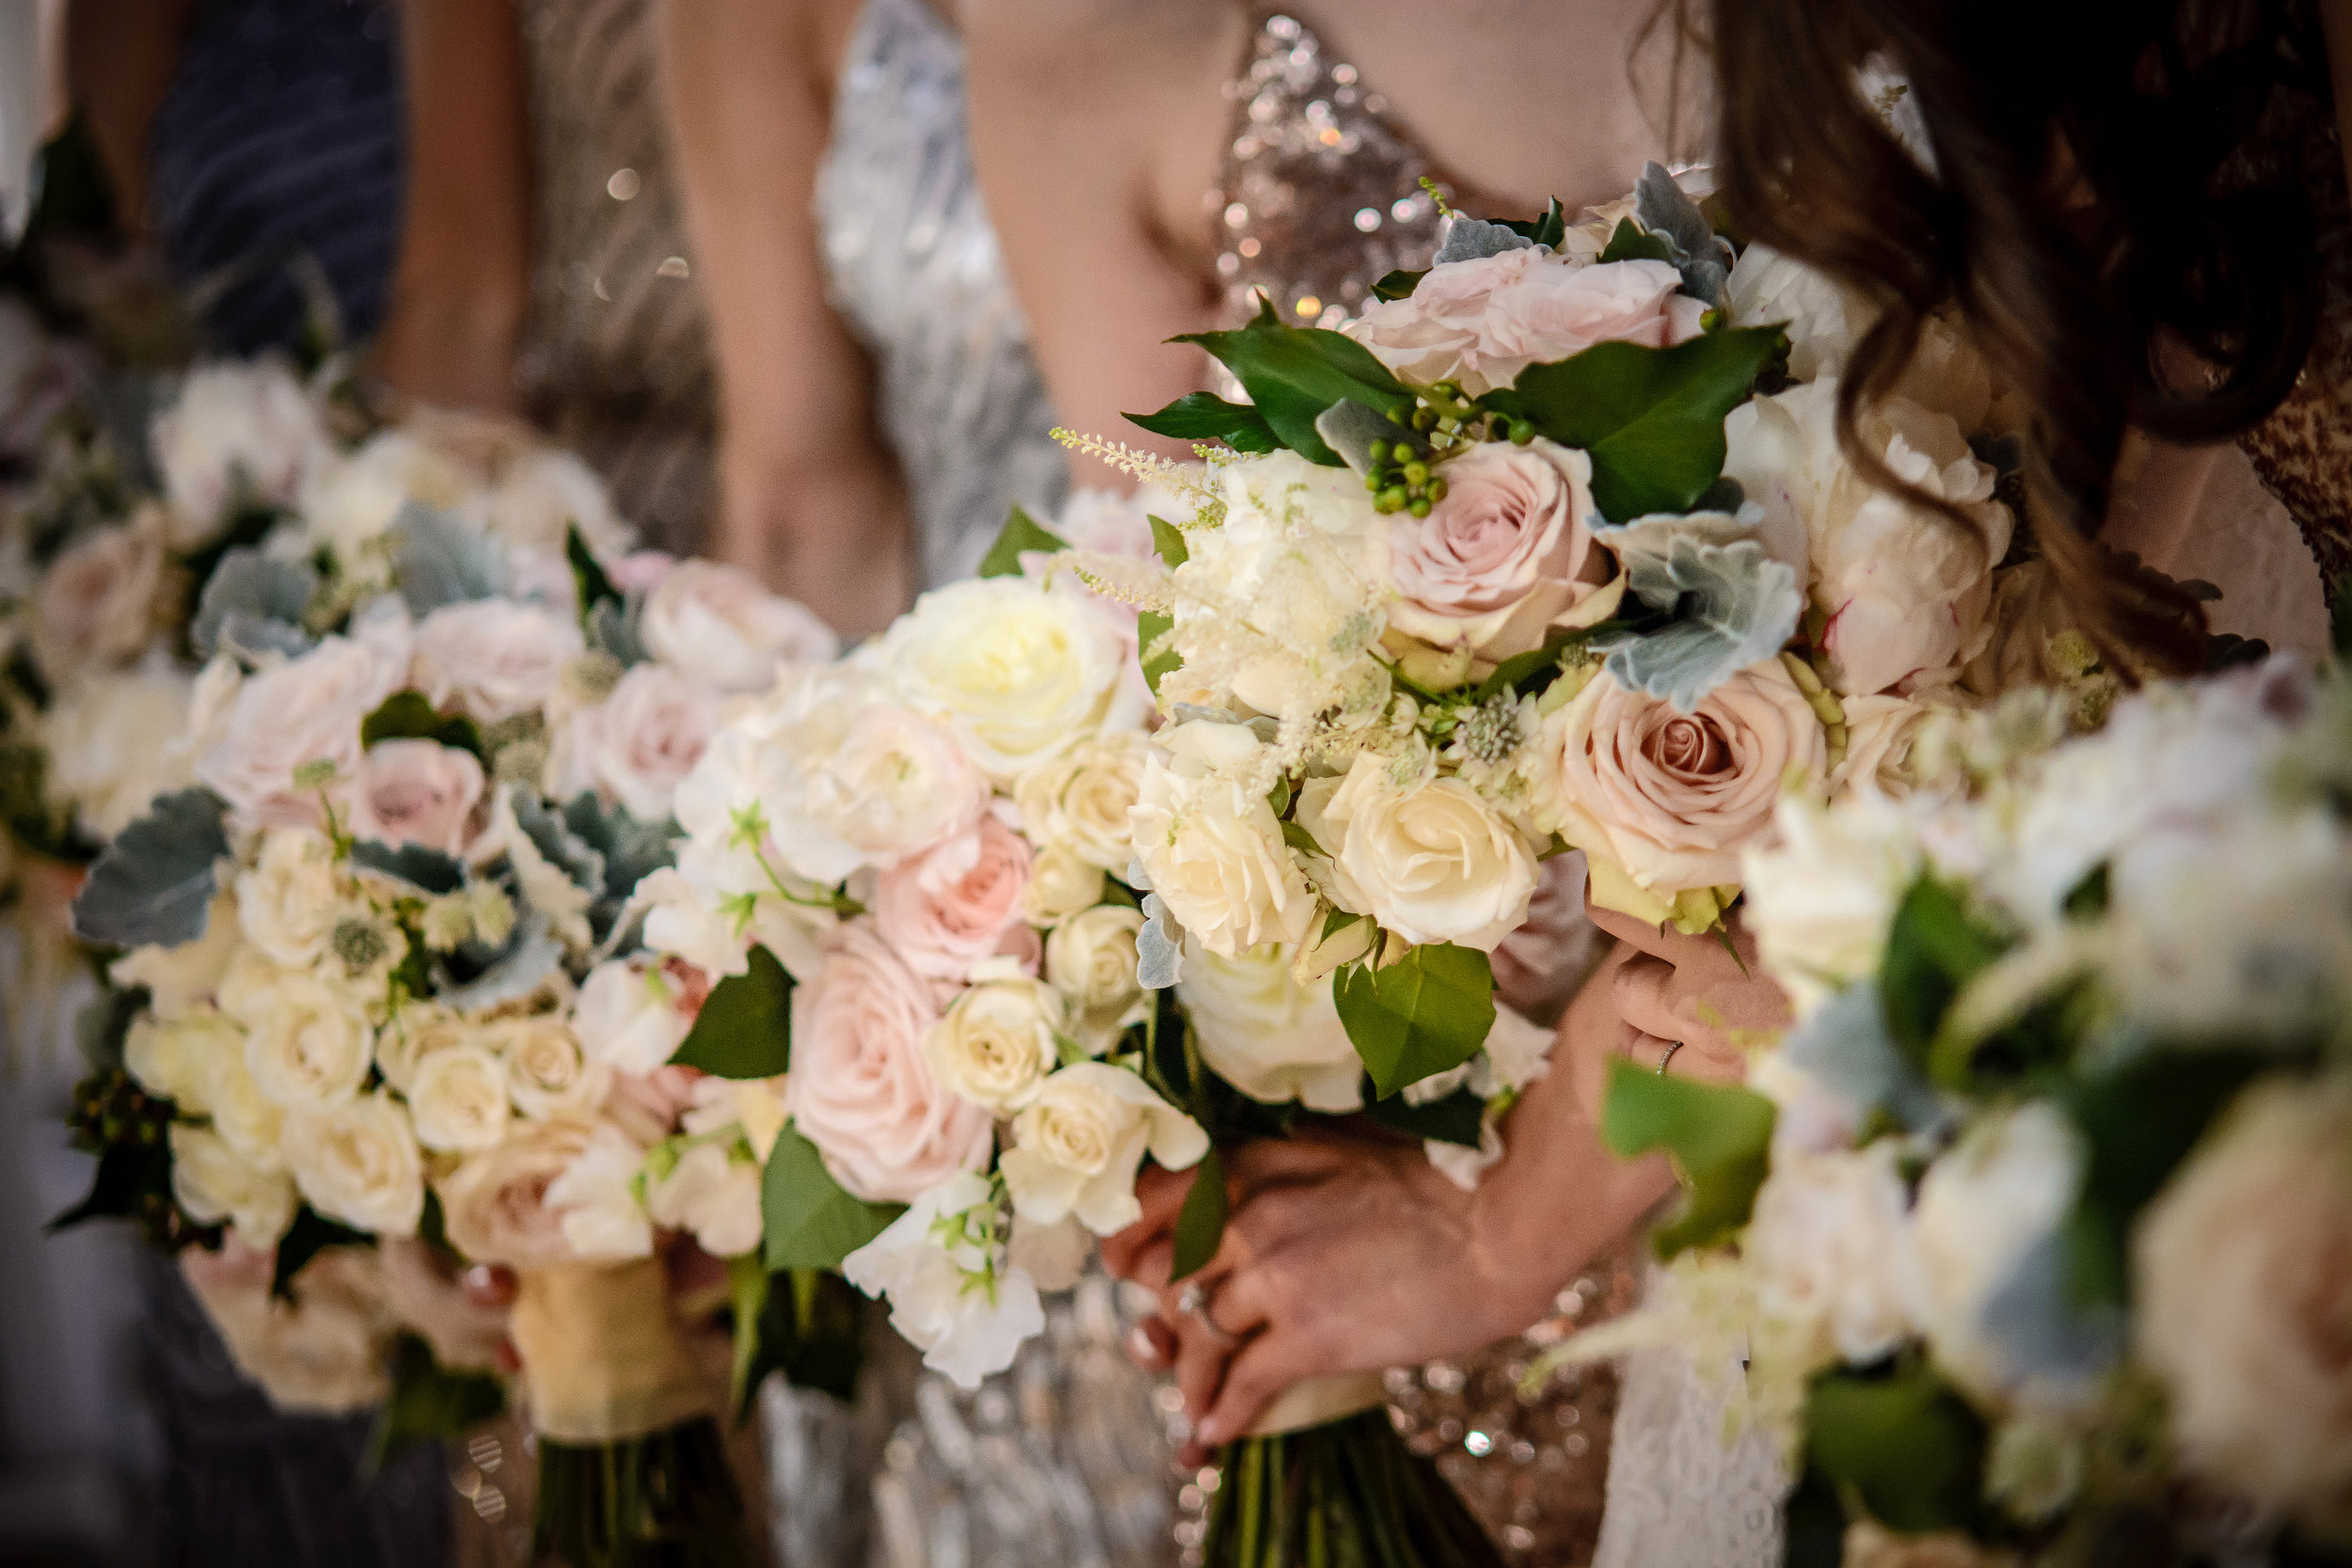 "Wedding Flowers:          96              Normal   0           false   false   false     EN-US   X-NONE   X-NONE                                                                                                                                                                                                                                                                                                                                                                                                                                                                                                                                                                                                                                                                                                                                                                                                                                                                                     /* Style Definitions */ table.MsoNormalTable 	{mso-style-name:""Table Normal""; 	mso-tstyle-rowband-size:0; 	mso-tstyle-colband-size:0; 	mso-style-noshow:yes; 	mso-style-priority:99; 	mso-style-parent:""""; 	mso-padding-alt:0in 5.4pt 0in 5.4pt; 	mso-para-margin:0in; 	mso-para-margin-bottom:.0001pt; 	mso-pagination:widow-orphan; 	font-size:12.0pt; 	font-family:Calibri; 	mso-ascii-font-family:Calibri; 	mso-ascii-theme-font:minor-latin; 	mso-hansi-font-family:Calibri; 	mso-hansi-theme-font:minor-latin;}      Rebecca Shepherd Floral Design"